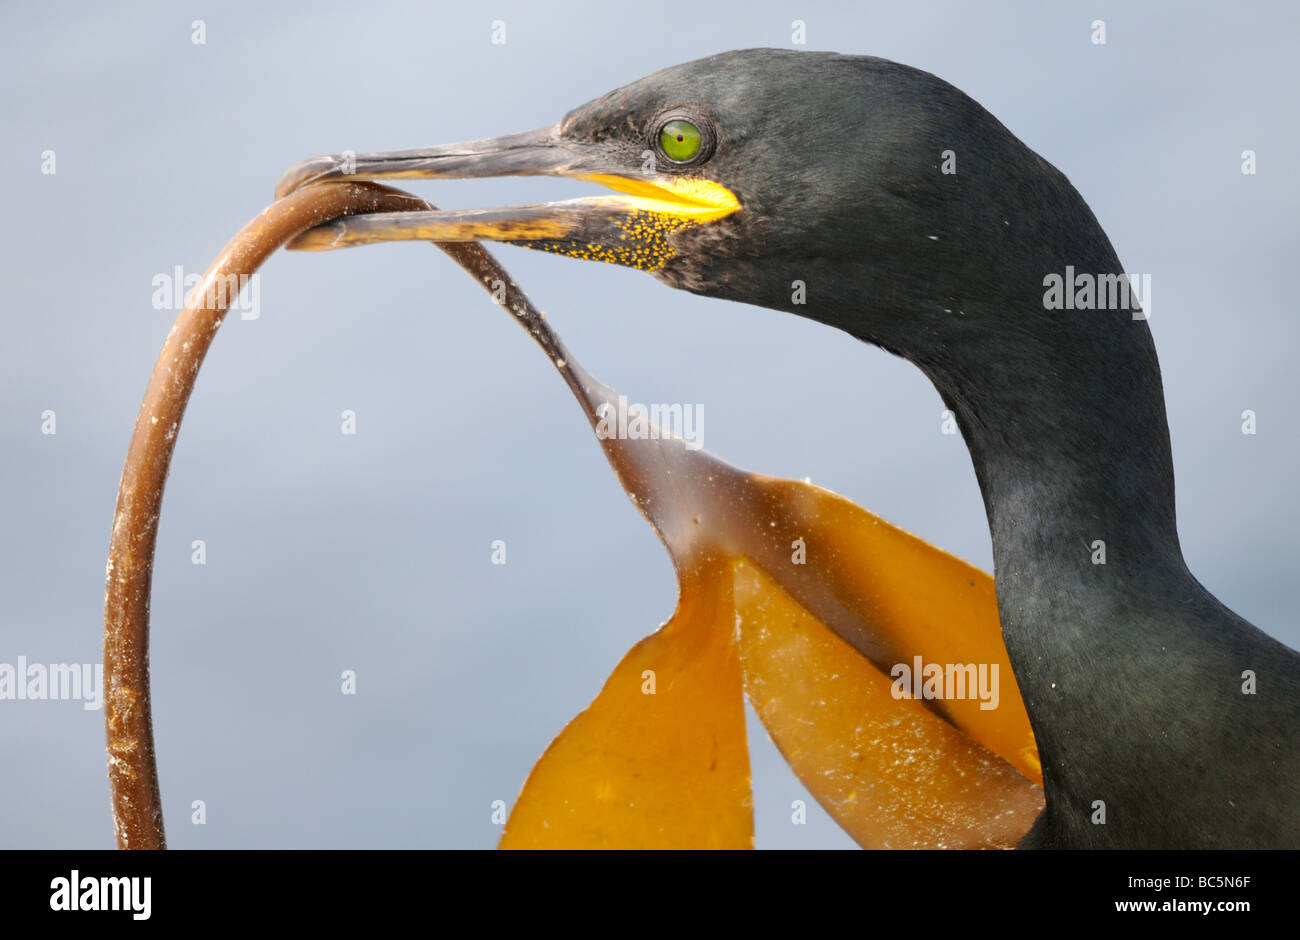 A Shag (Phalacrocorax aristotelis) brings a frond of kelp for its mate to add to their nest. - Stock Image